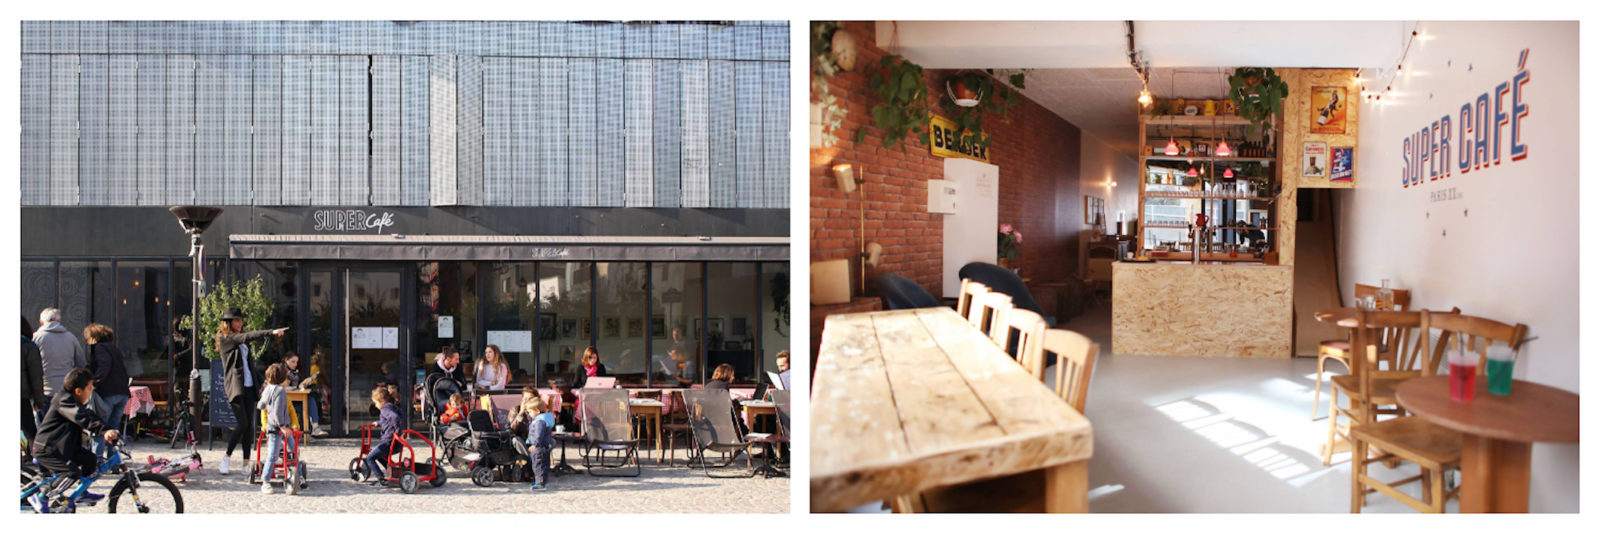 Brunch in Paris at Super Café which comes with a tricycle-friendly outdoor area (left) and plenty space to play inside (right).